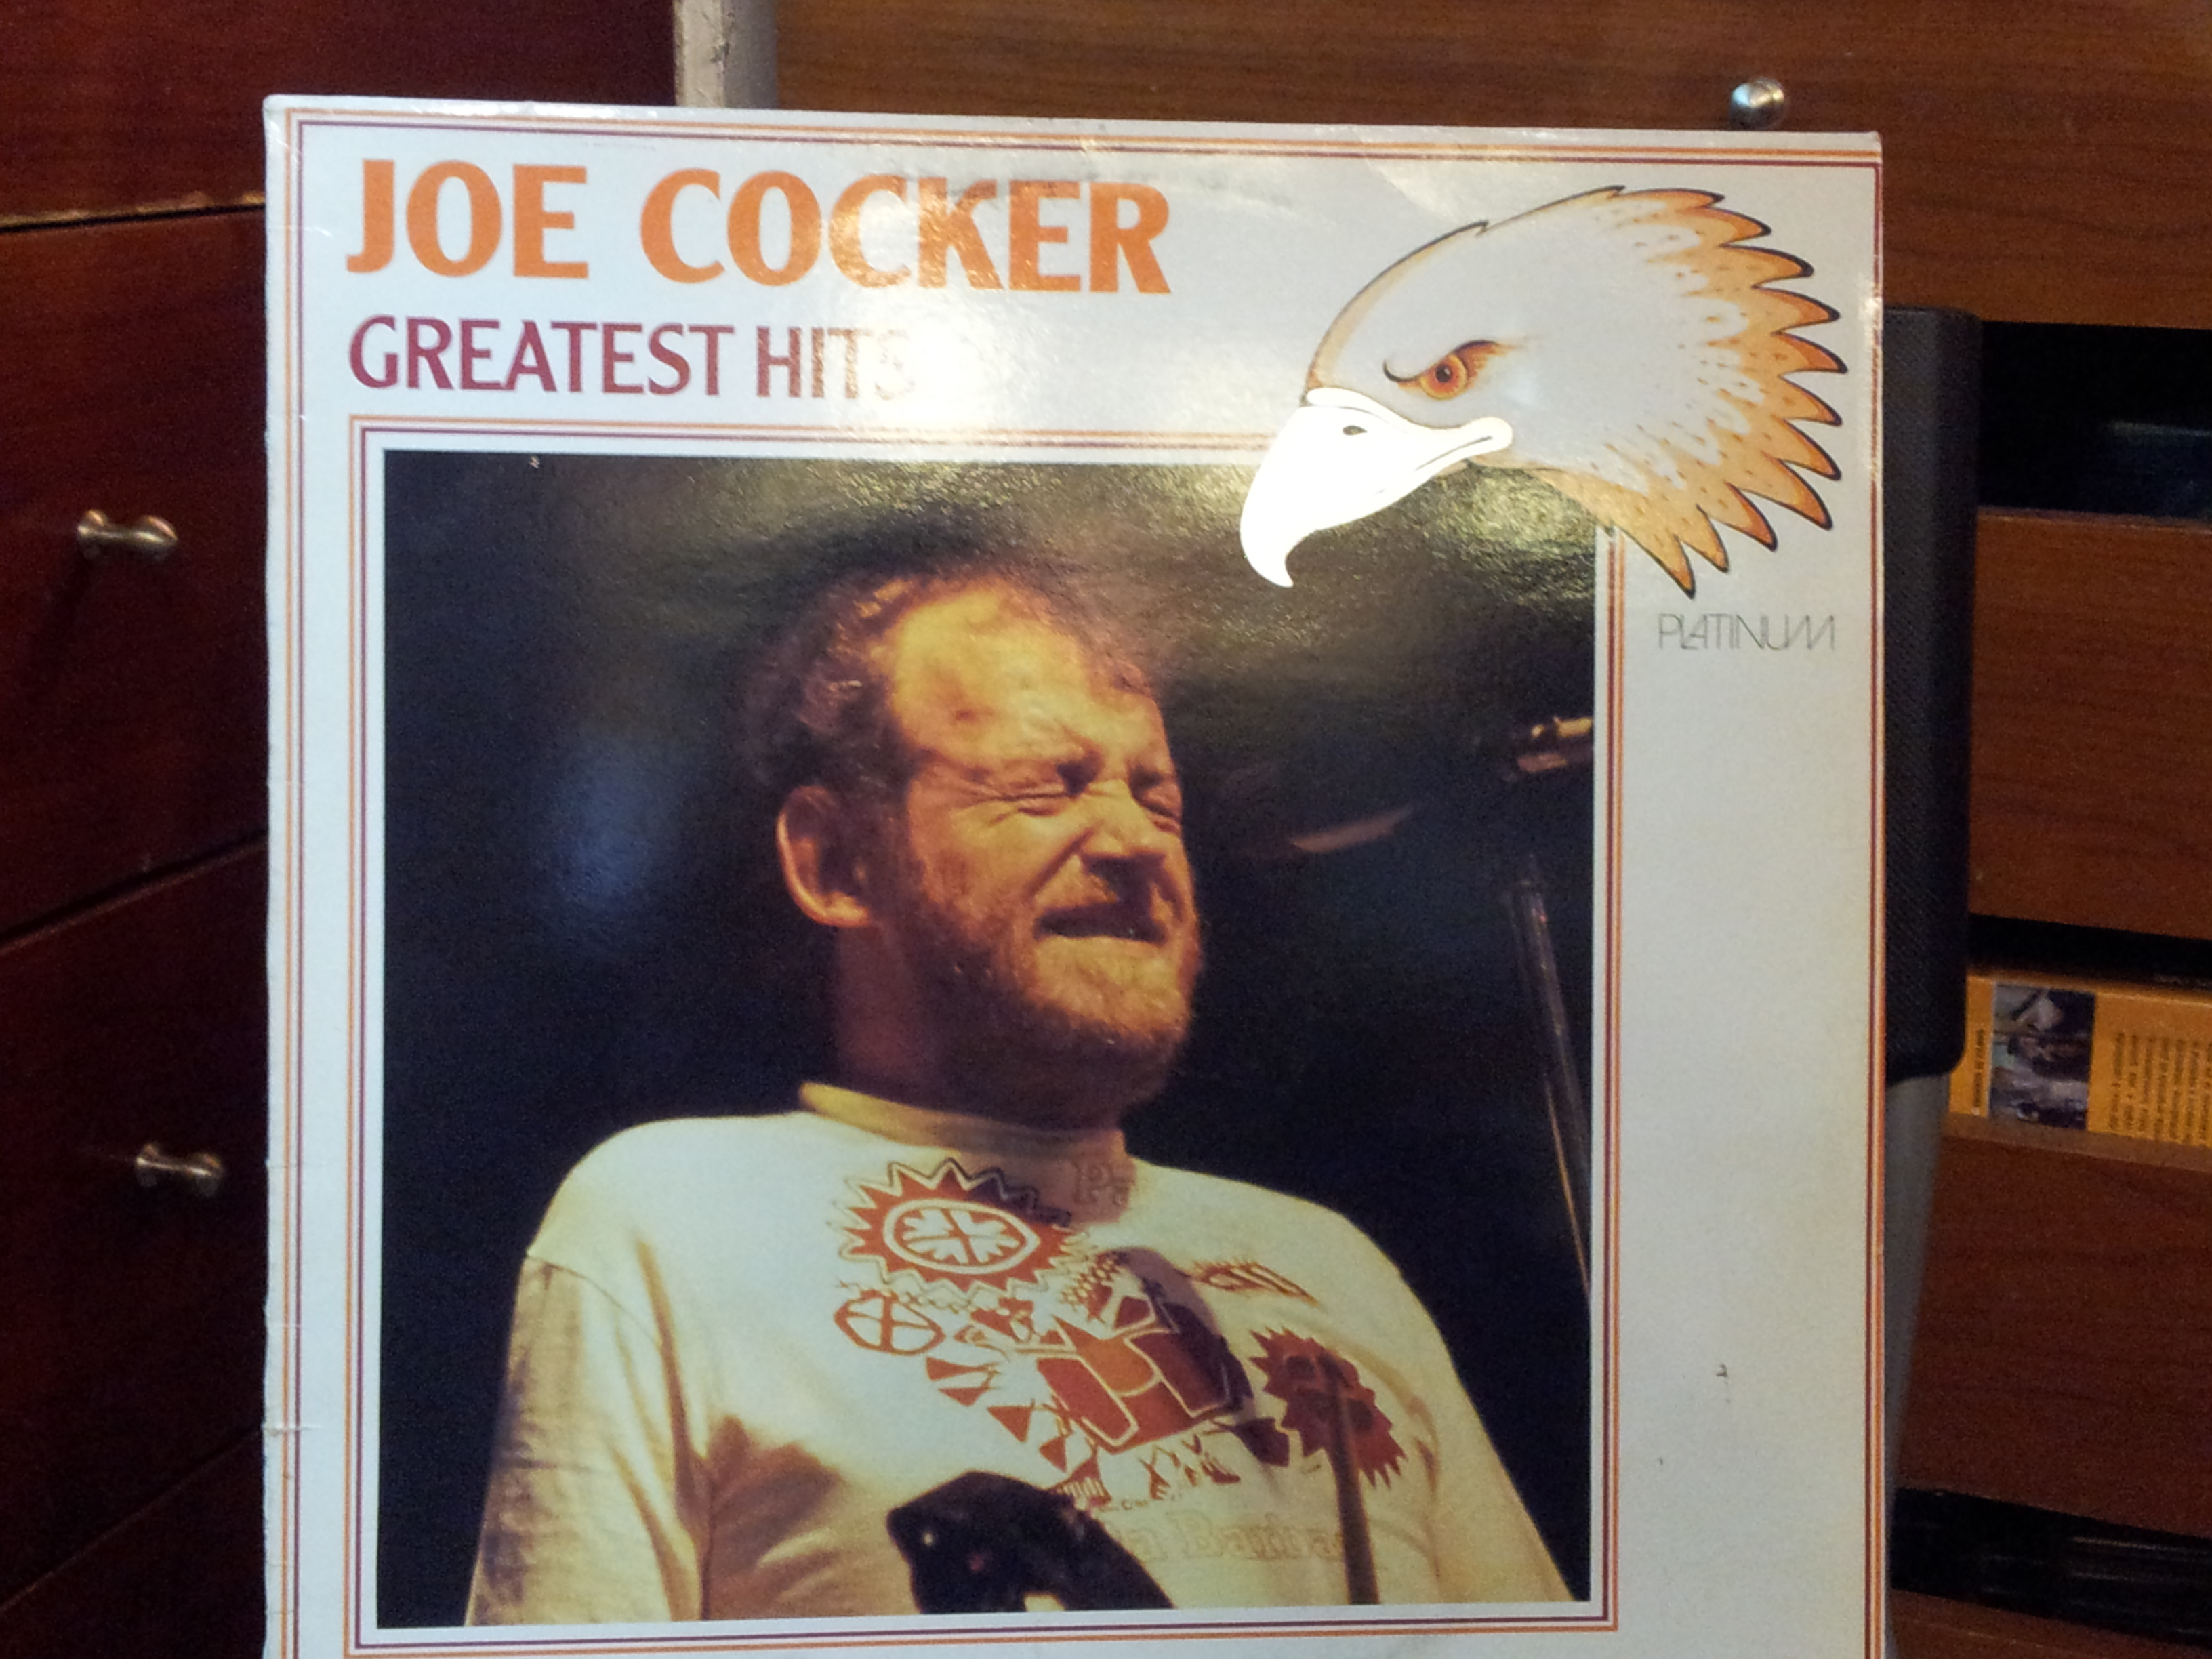 GREATEST HITS JOE COCKER